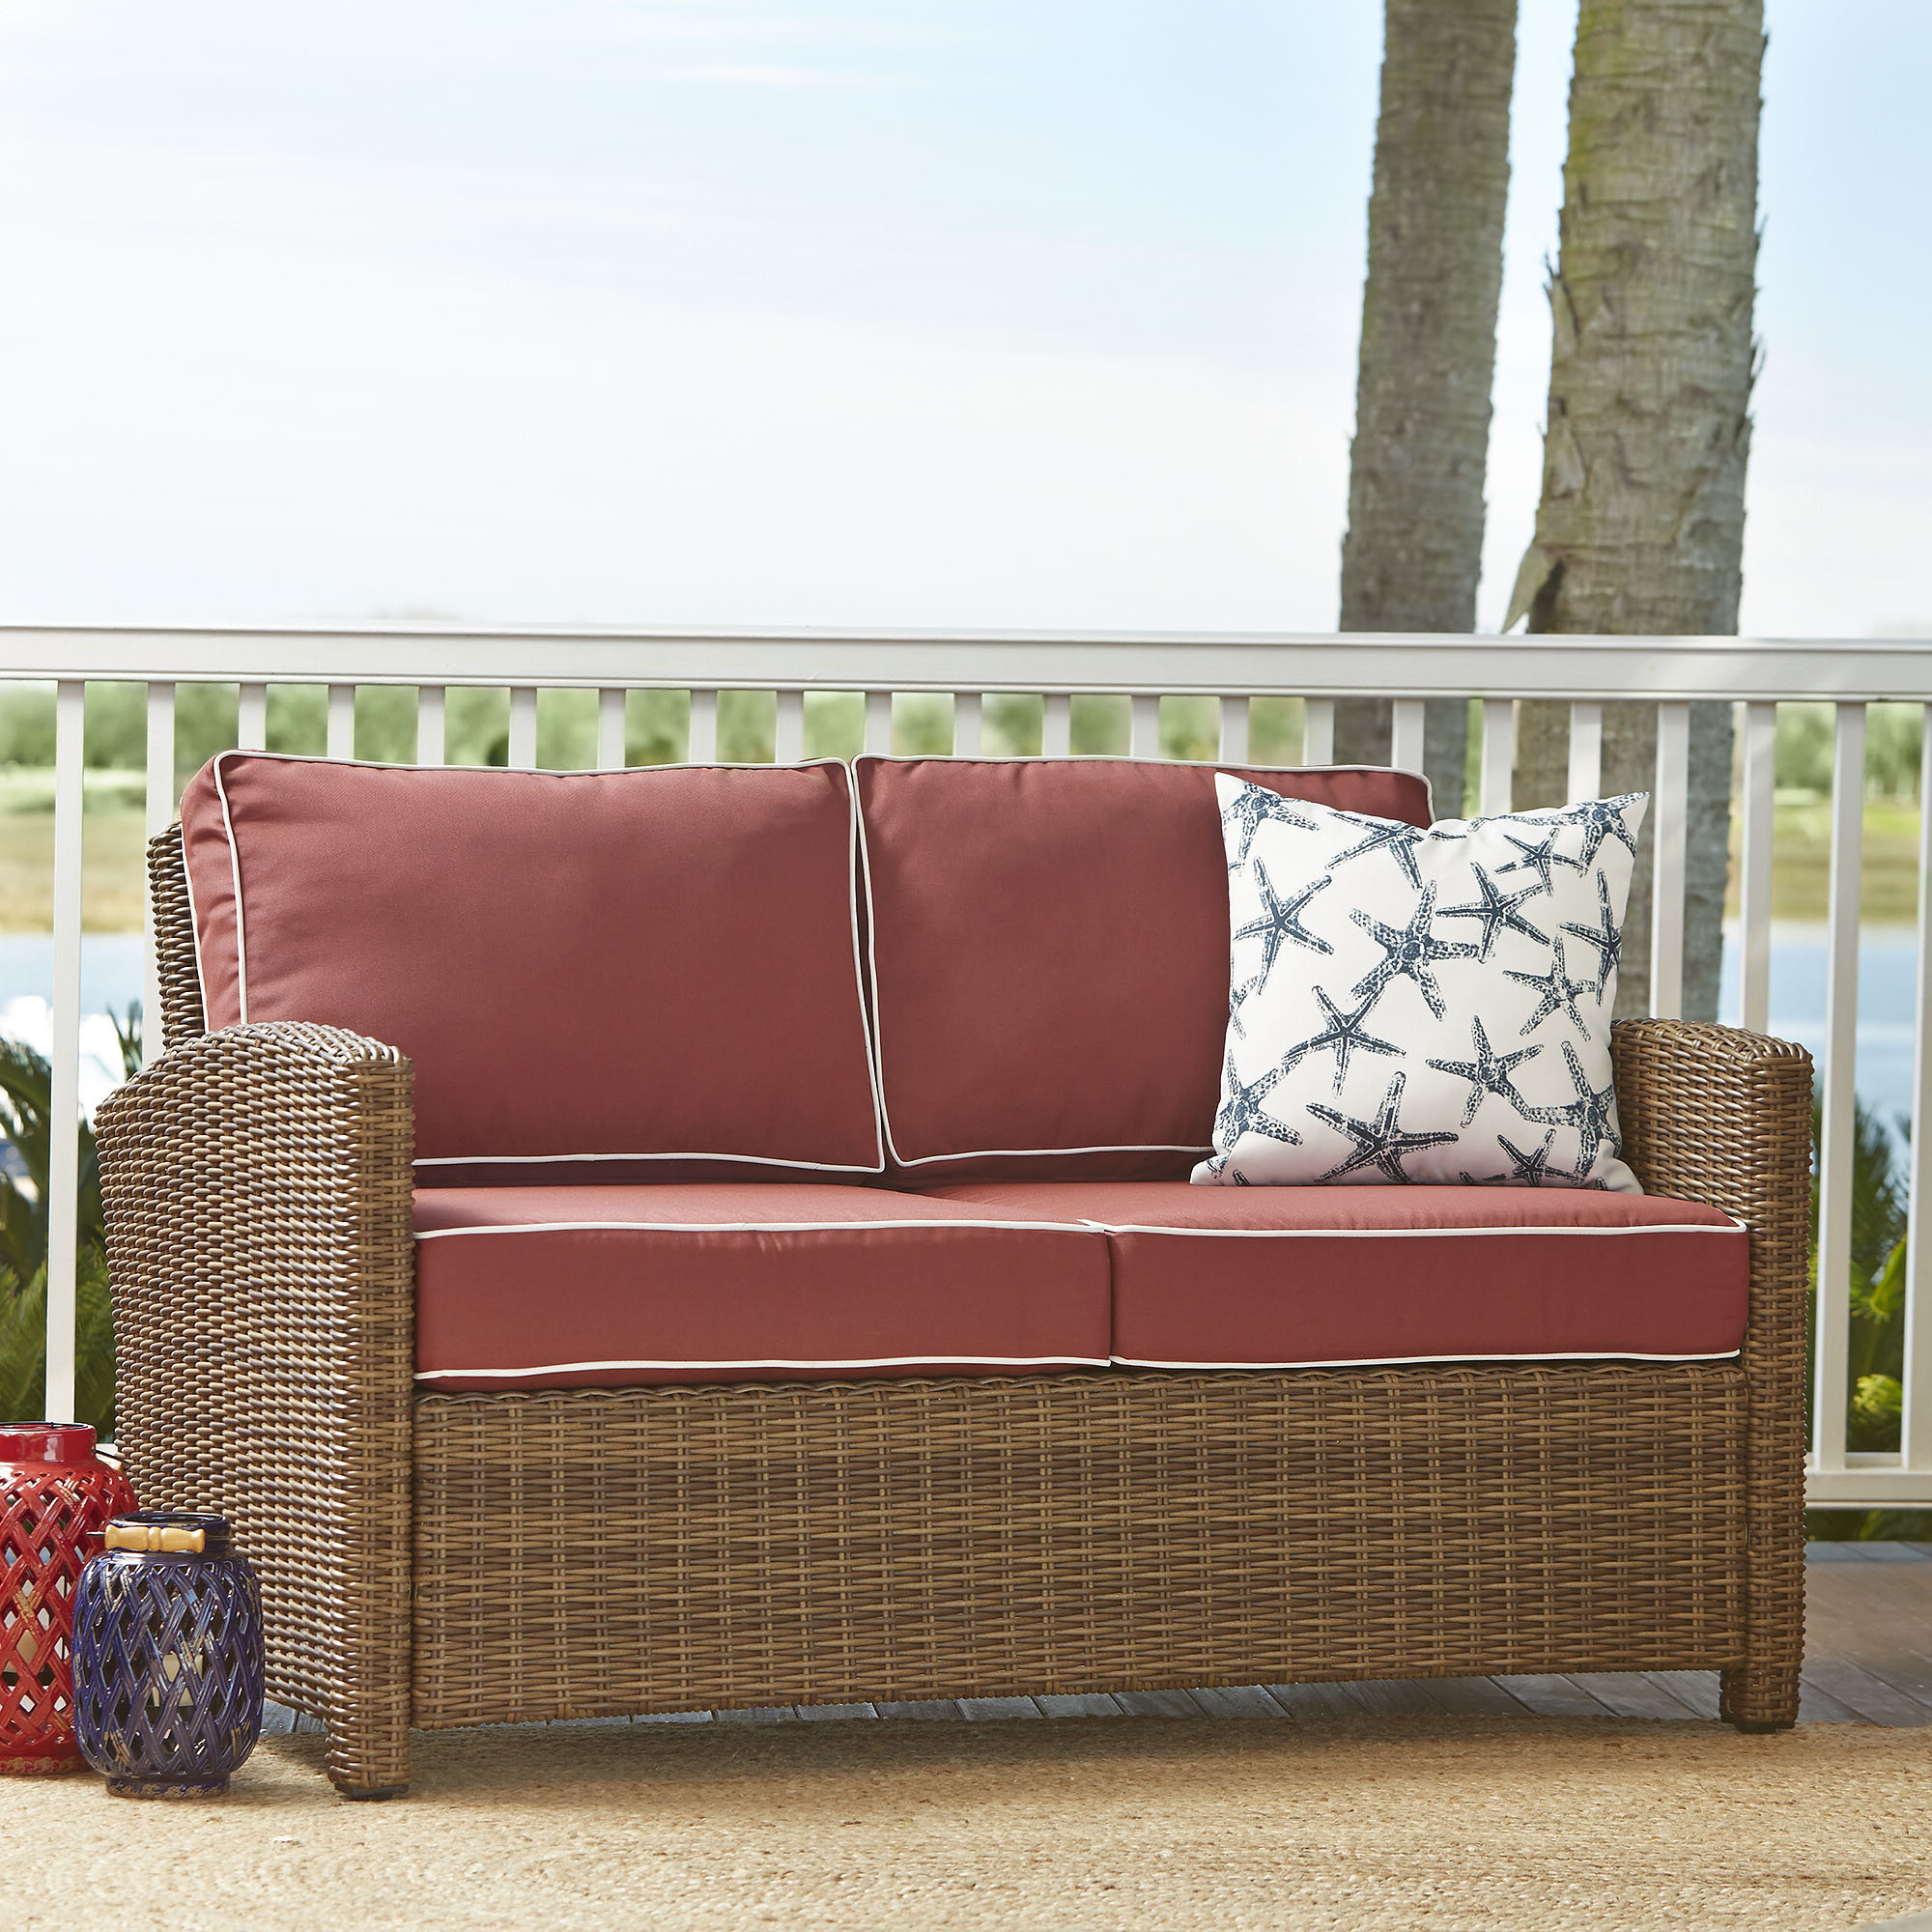 Widely Used Lawson Wicker Loveseat With Cushions With Regard To Linwood Loveseats With Cushions (View 16 of 25)